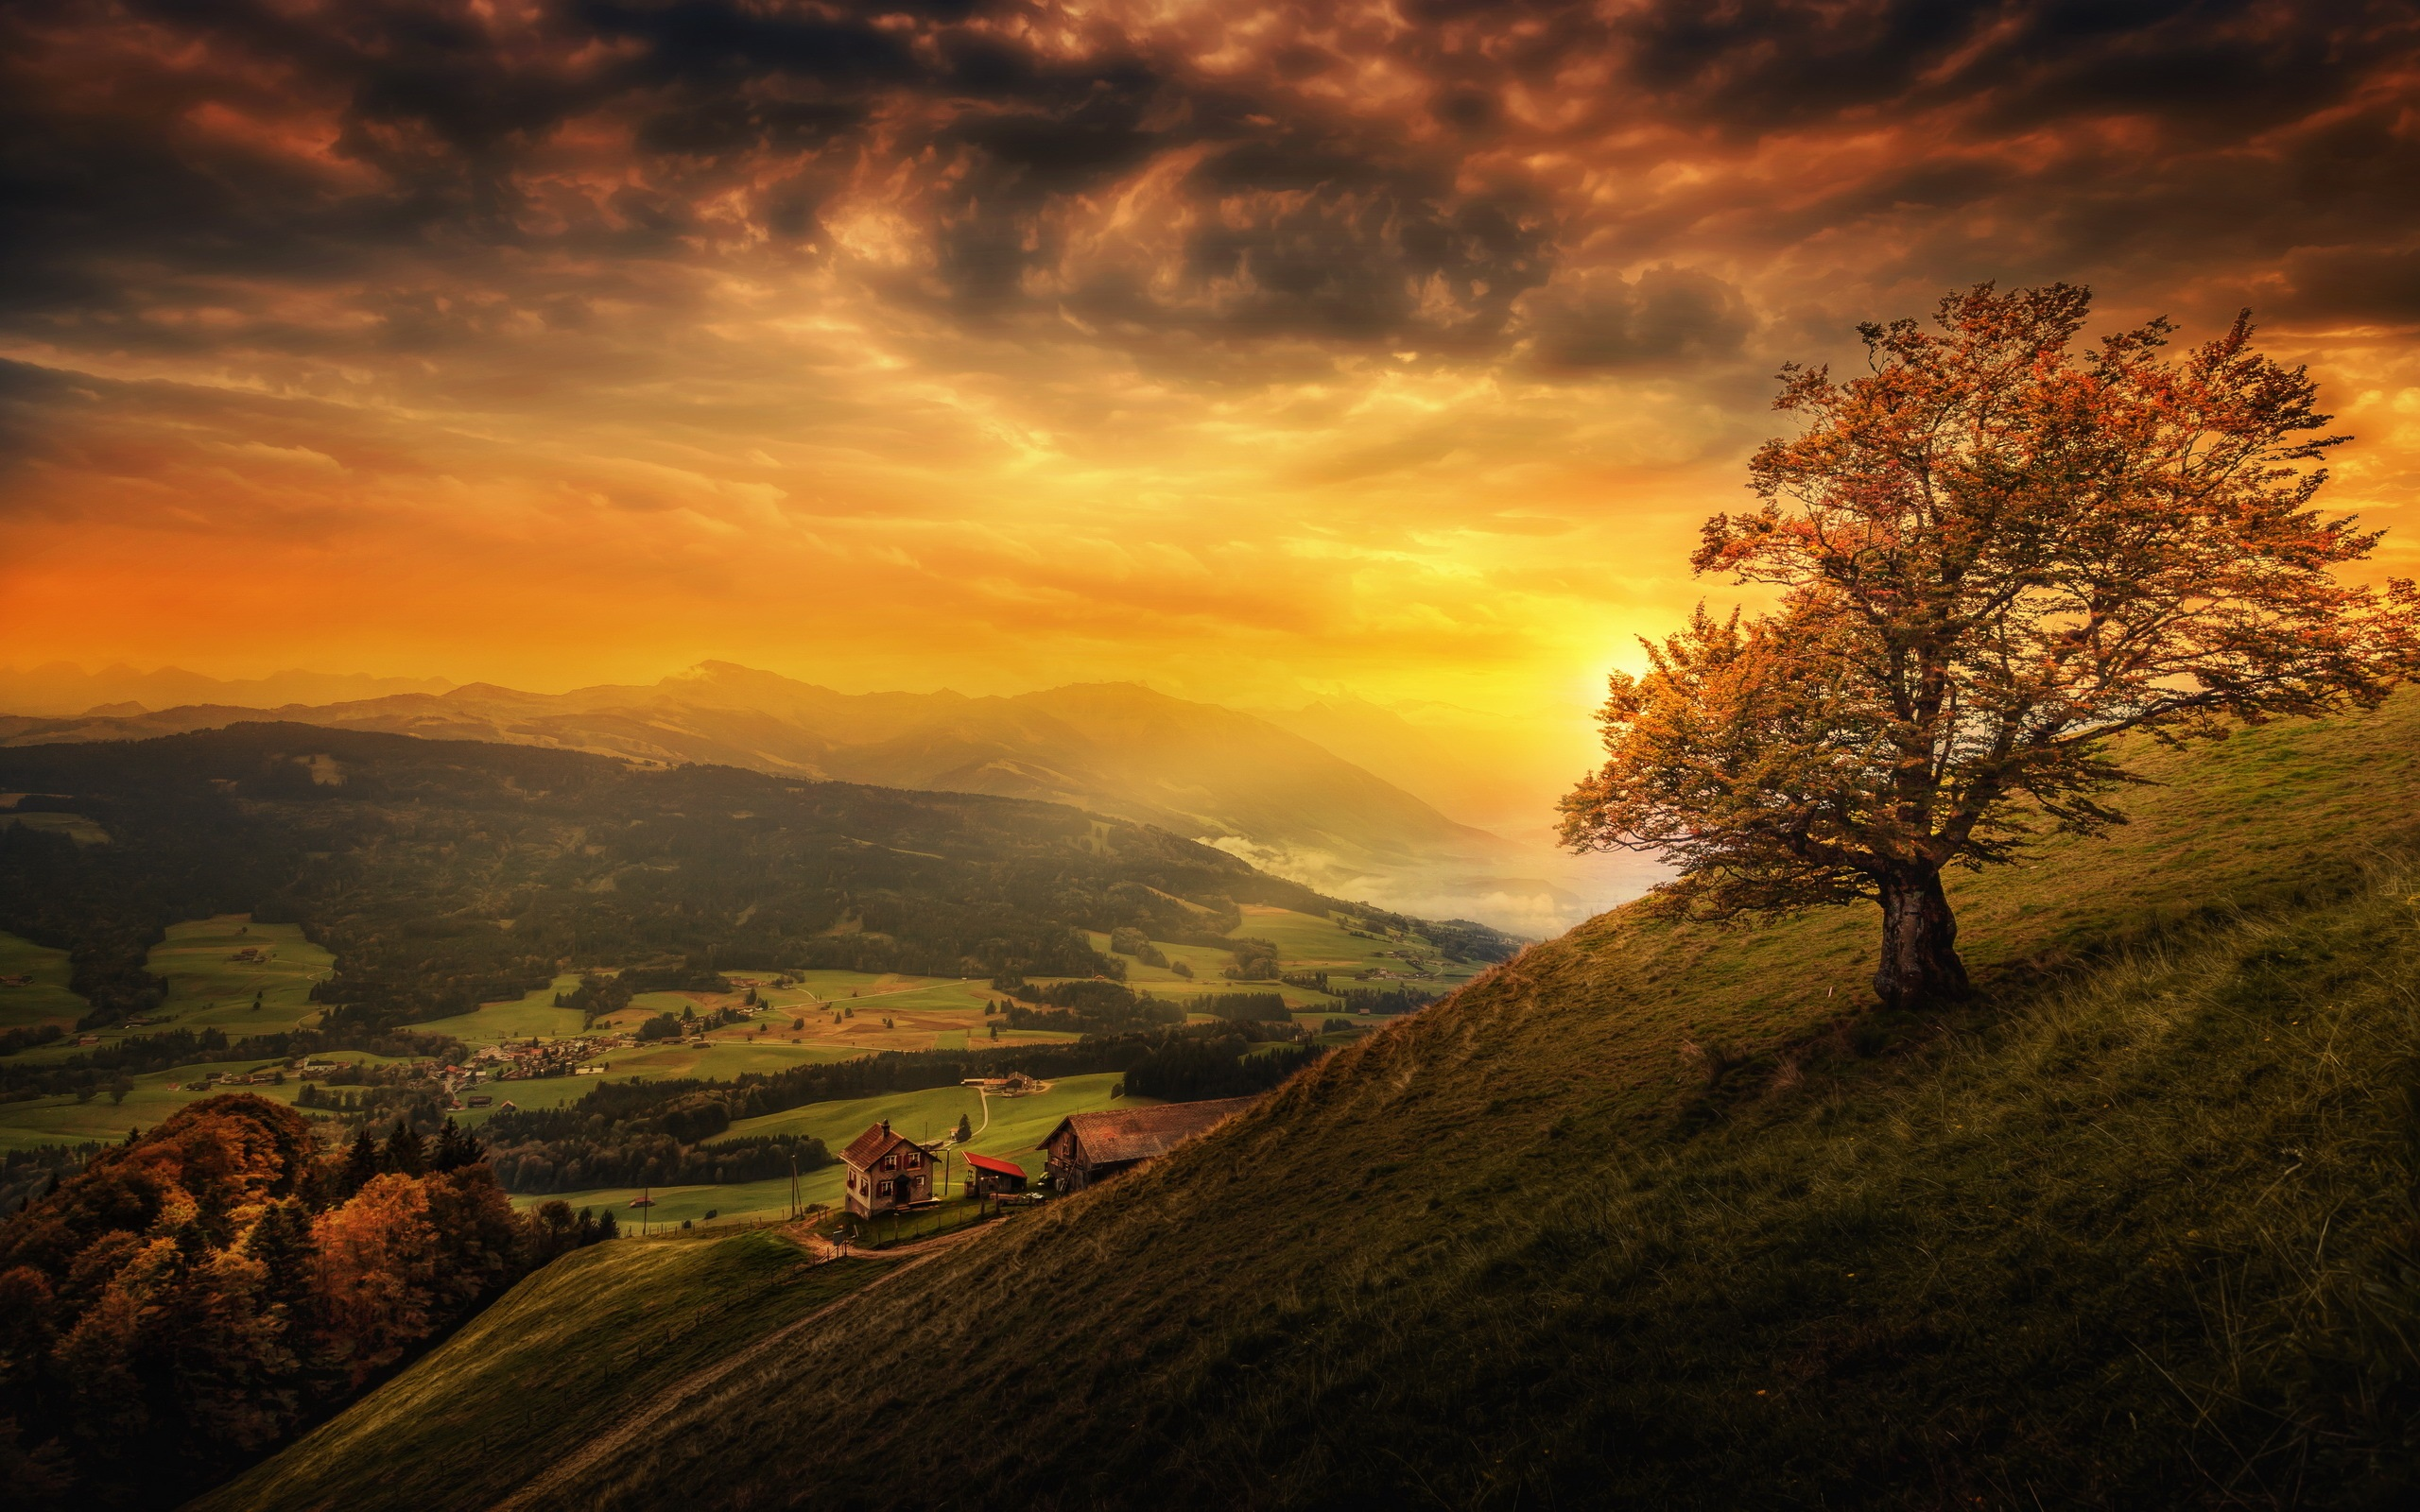 Wallpaper Beautiful Sunset Mountain Slope Tree Clouds Houses